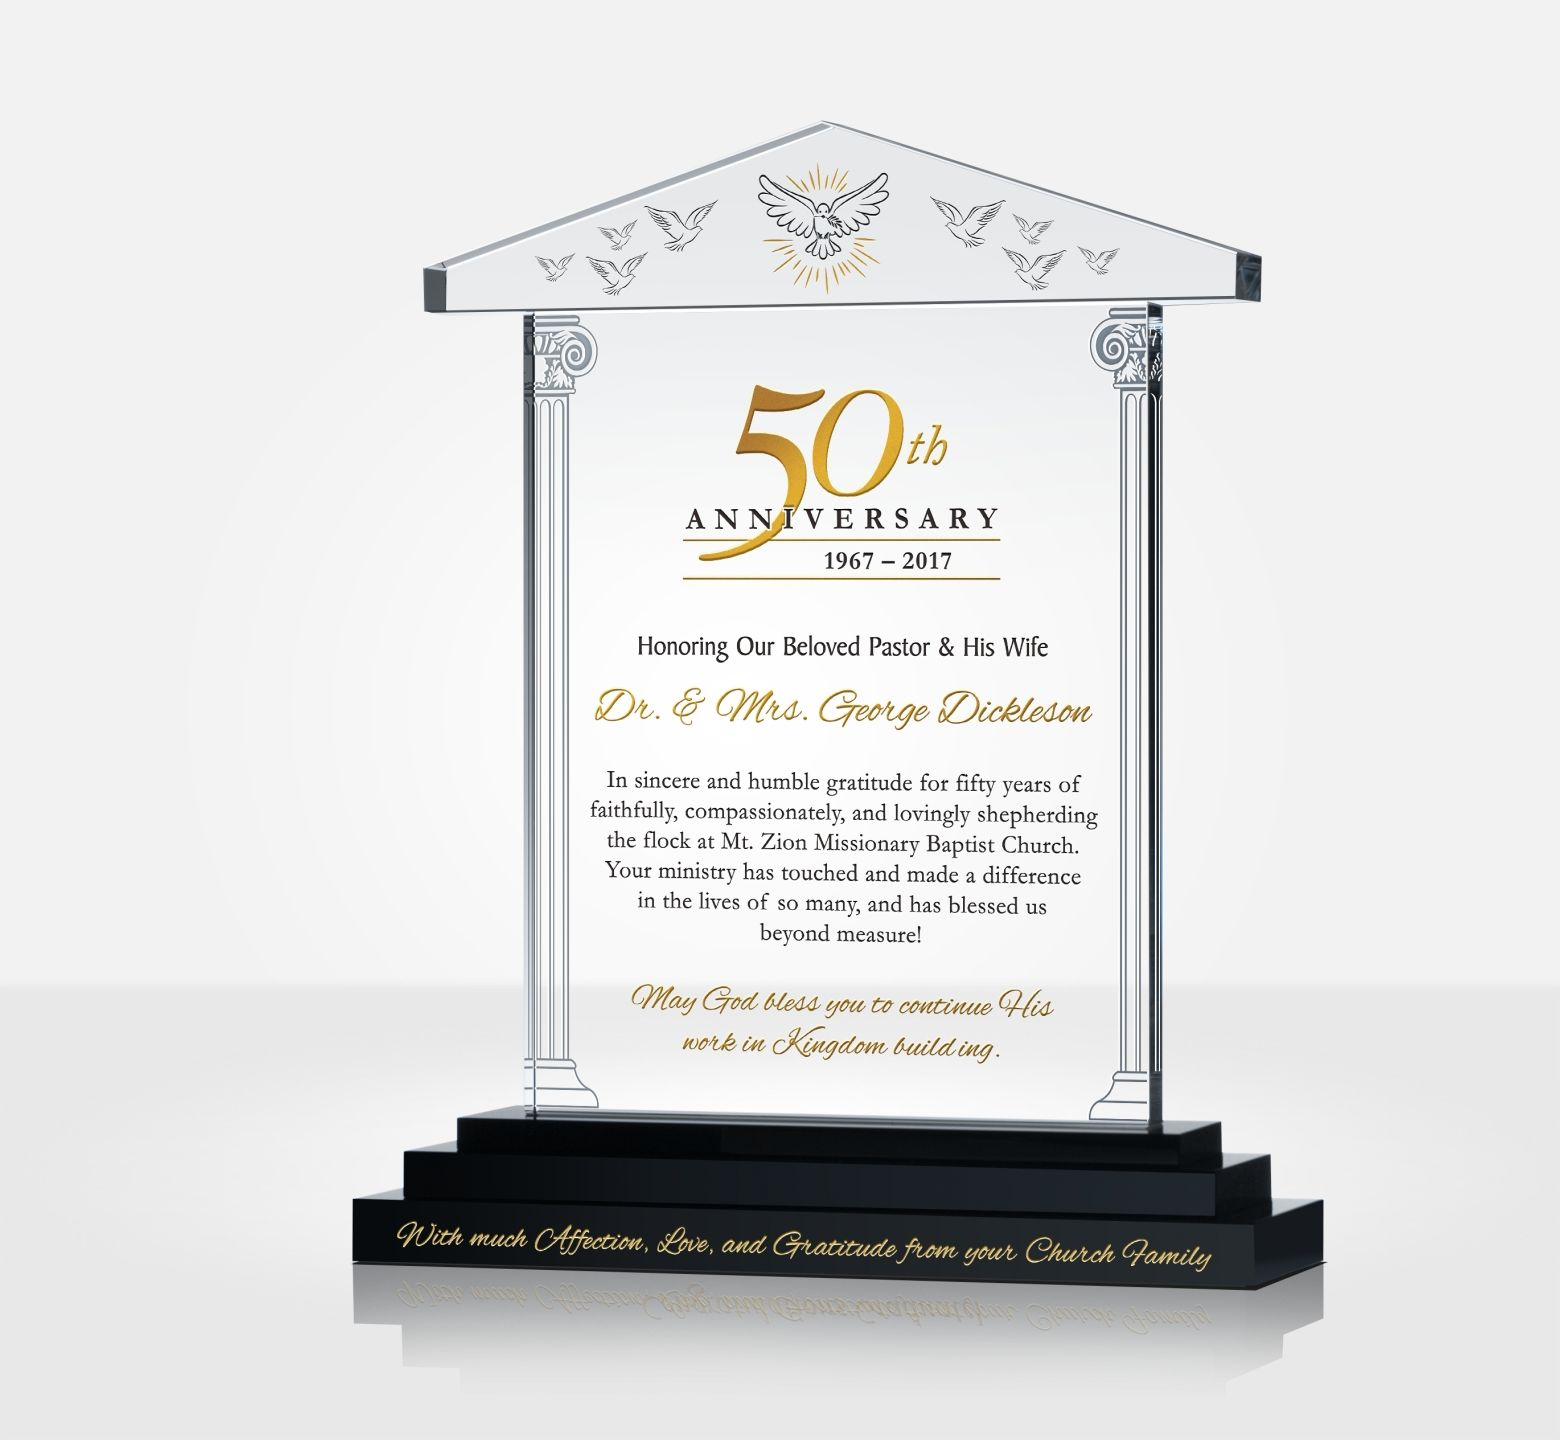 Pastoral 50th Anniversary Golden Jubilee Gift Plaque Diy